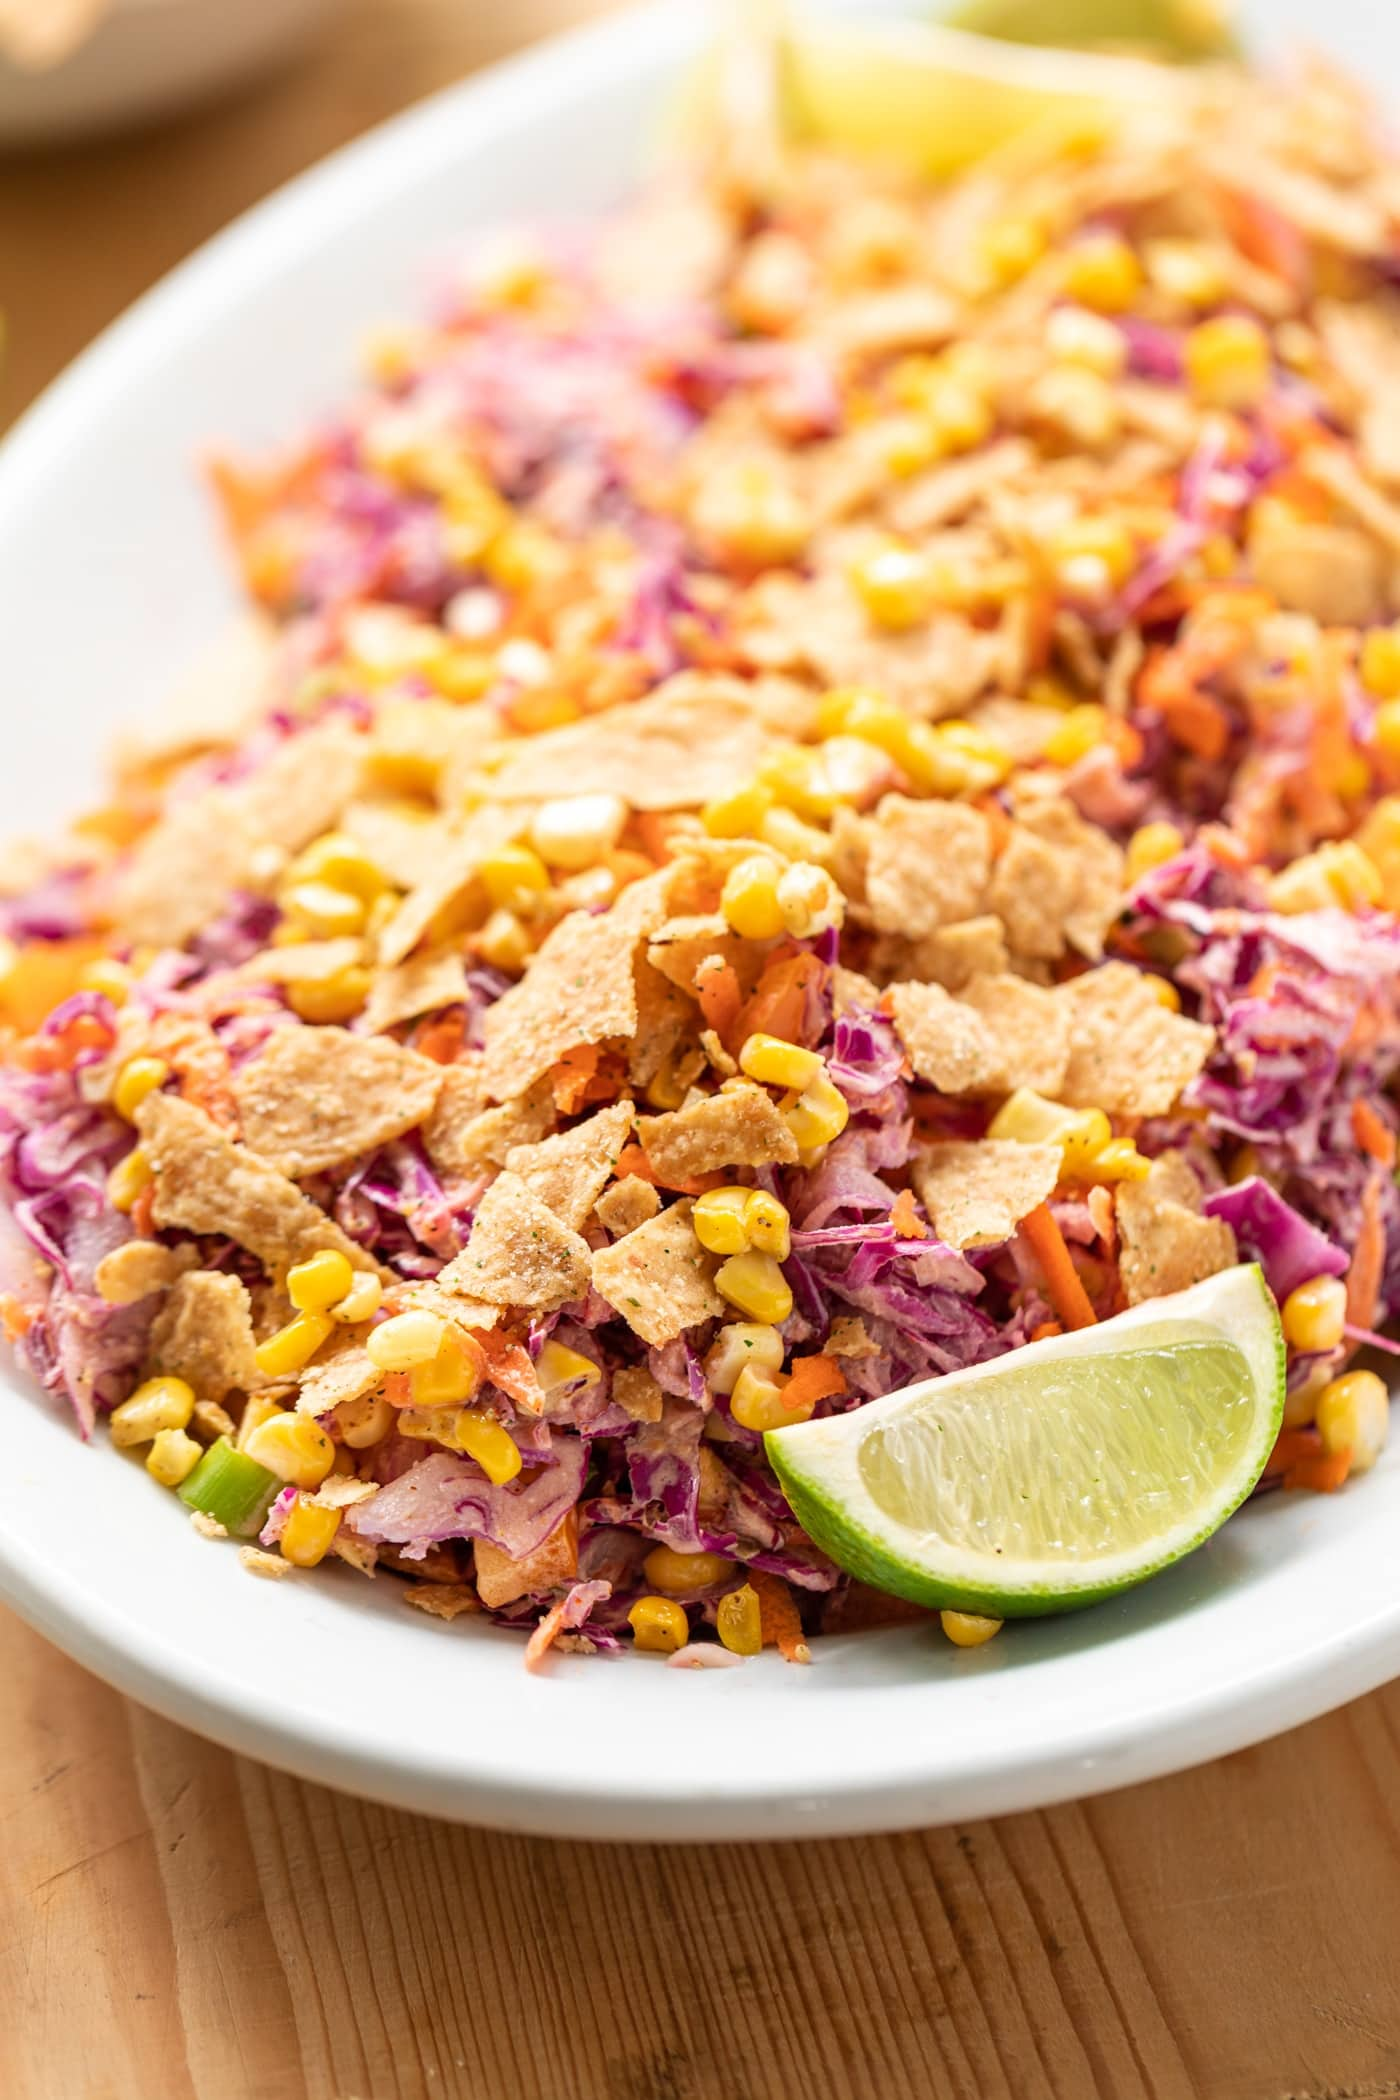 Tex-Mex coleslaw served on white serving platter topped with crushed tortilla chips and lime wedge all on wood surface